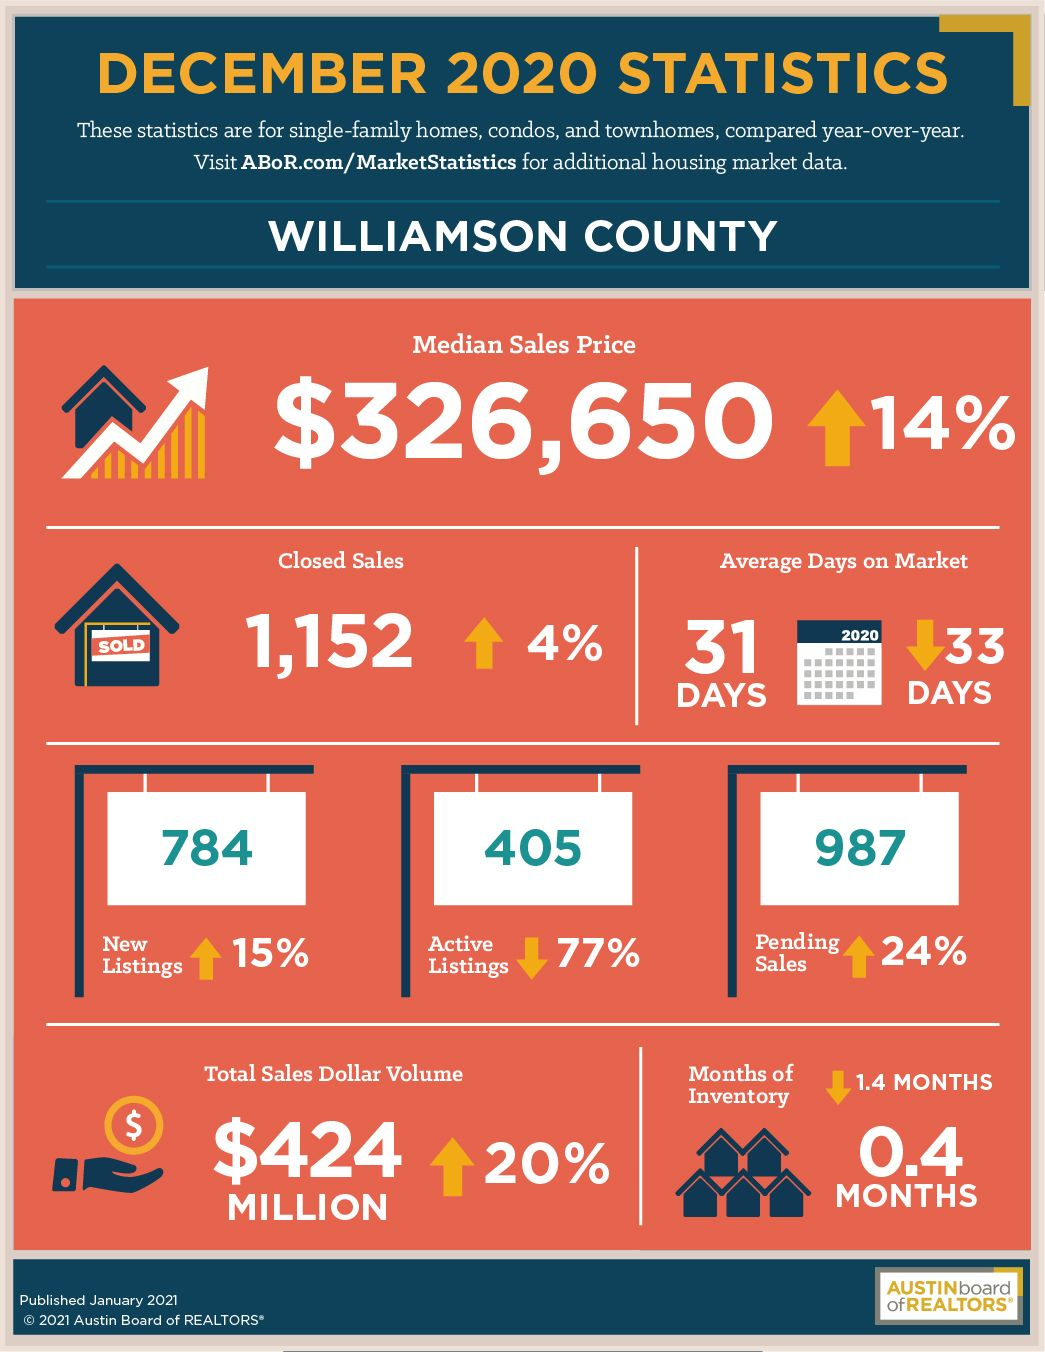 Williamson County 2020 December Real estate market statistics